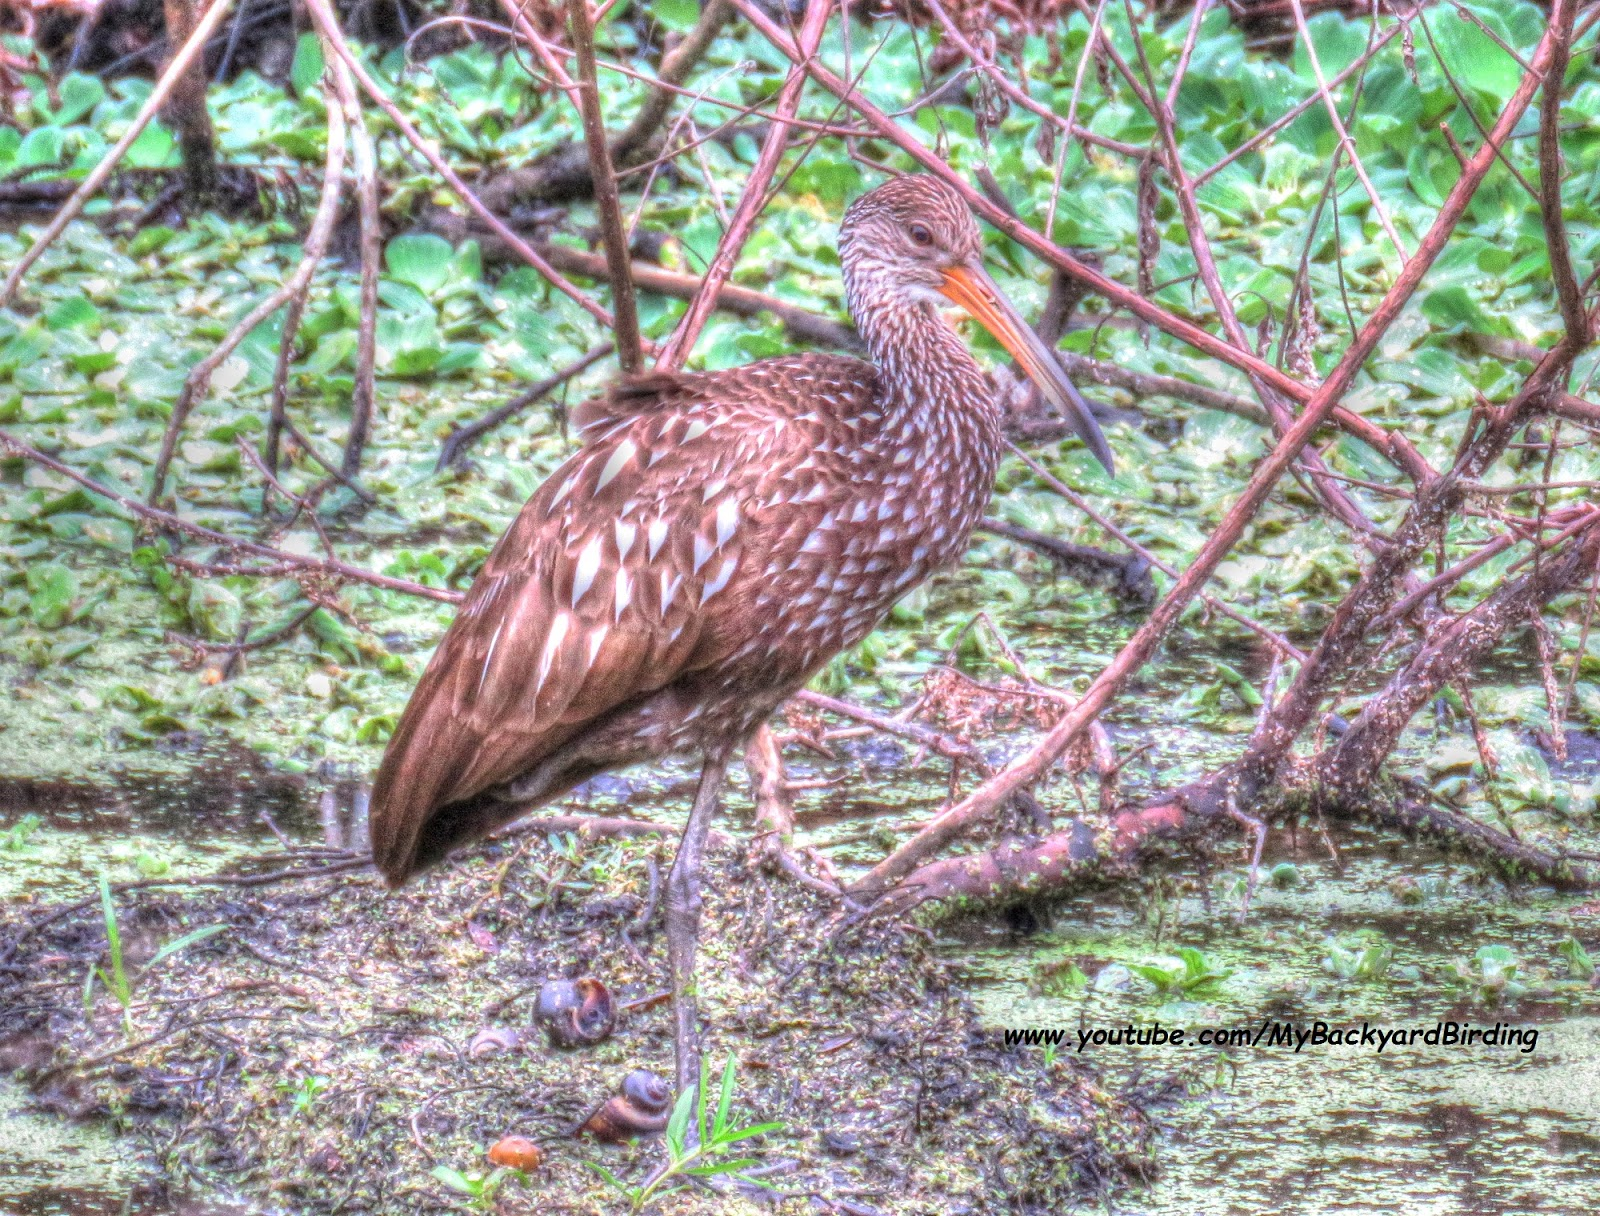 backyard birding and nature limpkin with apple snails